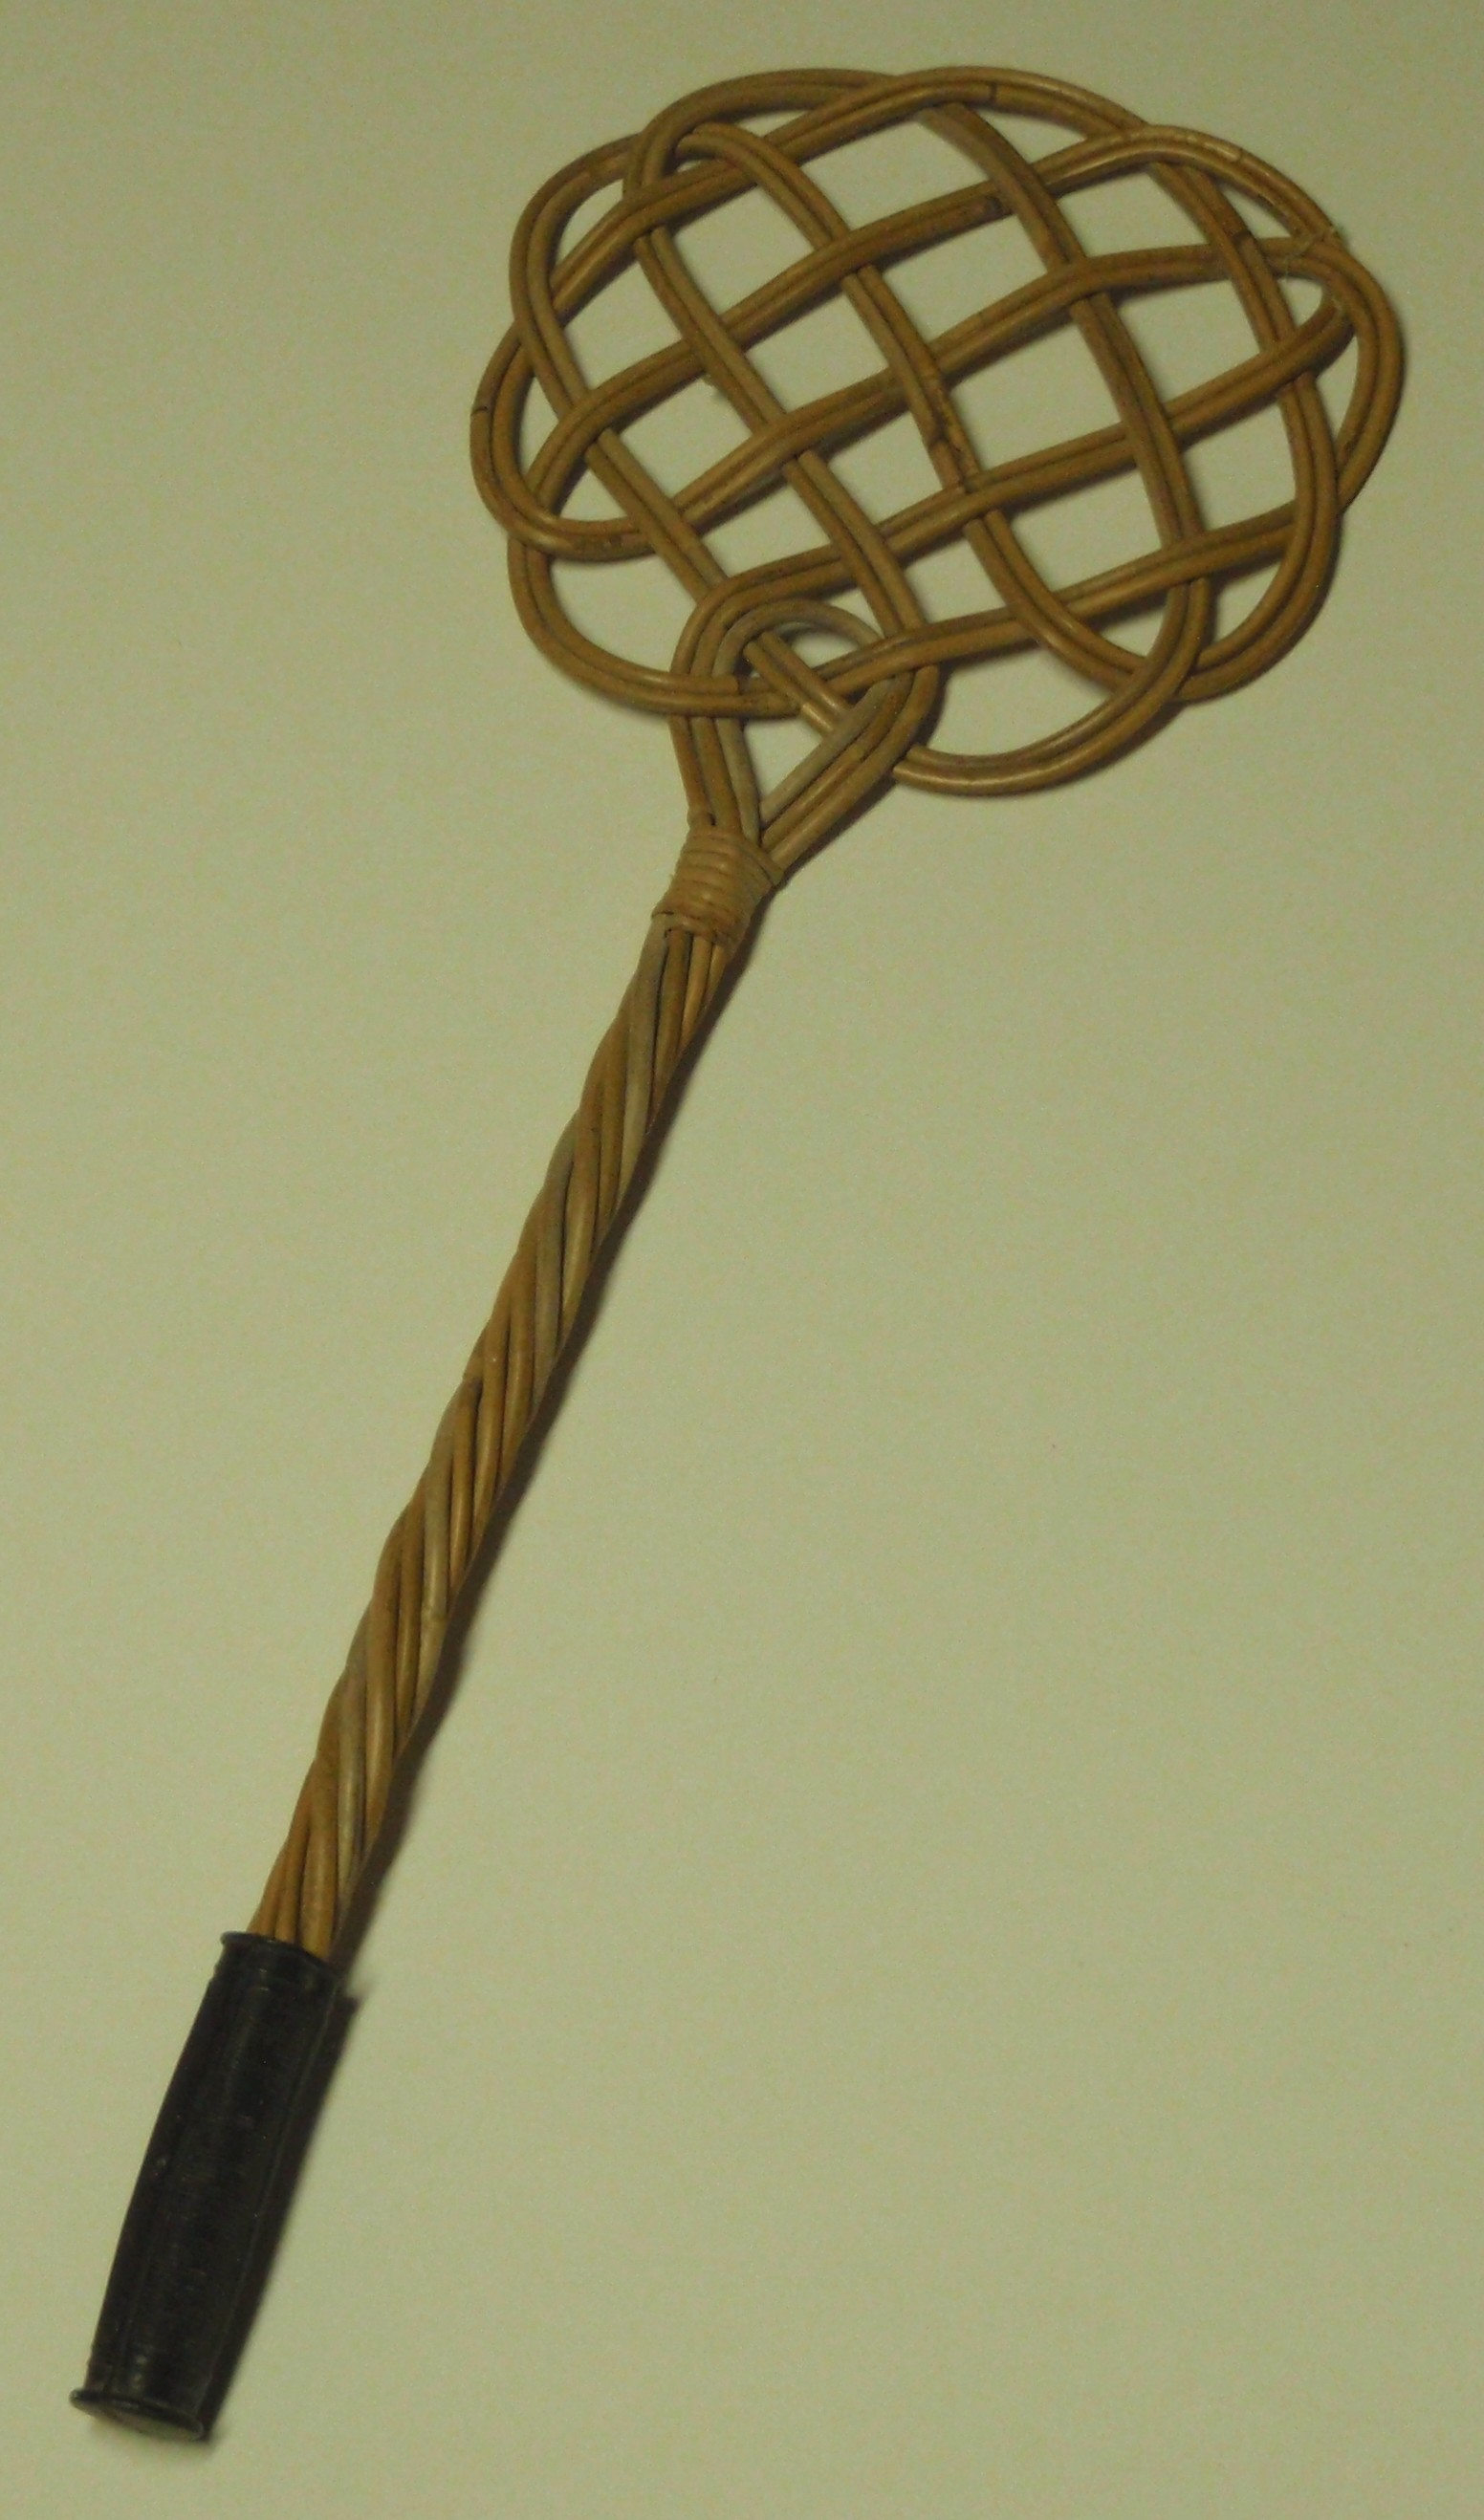 Old fashioned carpet beater